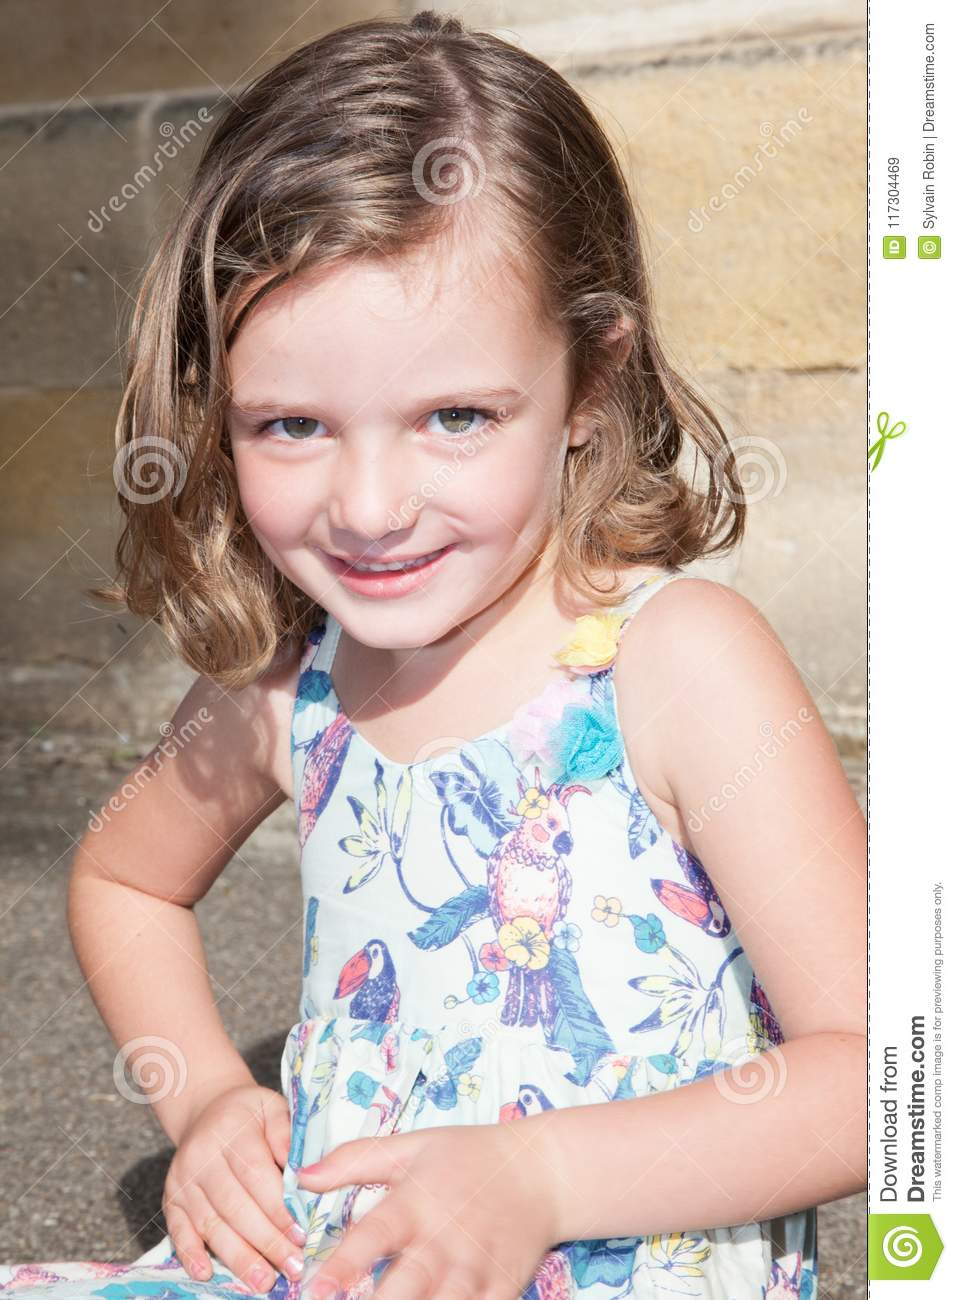 cf7f8d8a3 Adorable Smiling Little Girl Child In Dress Outdoor In Summer Day ...